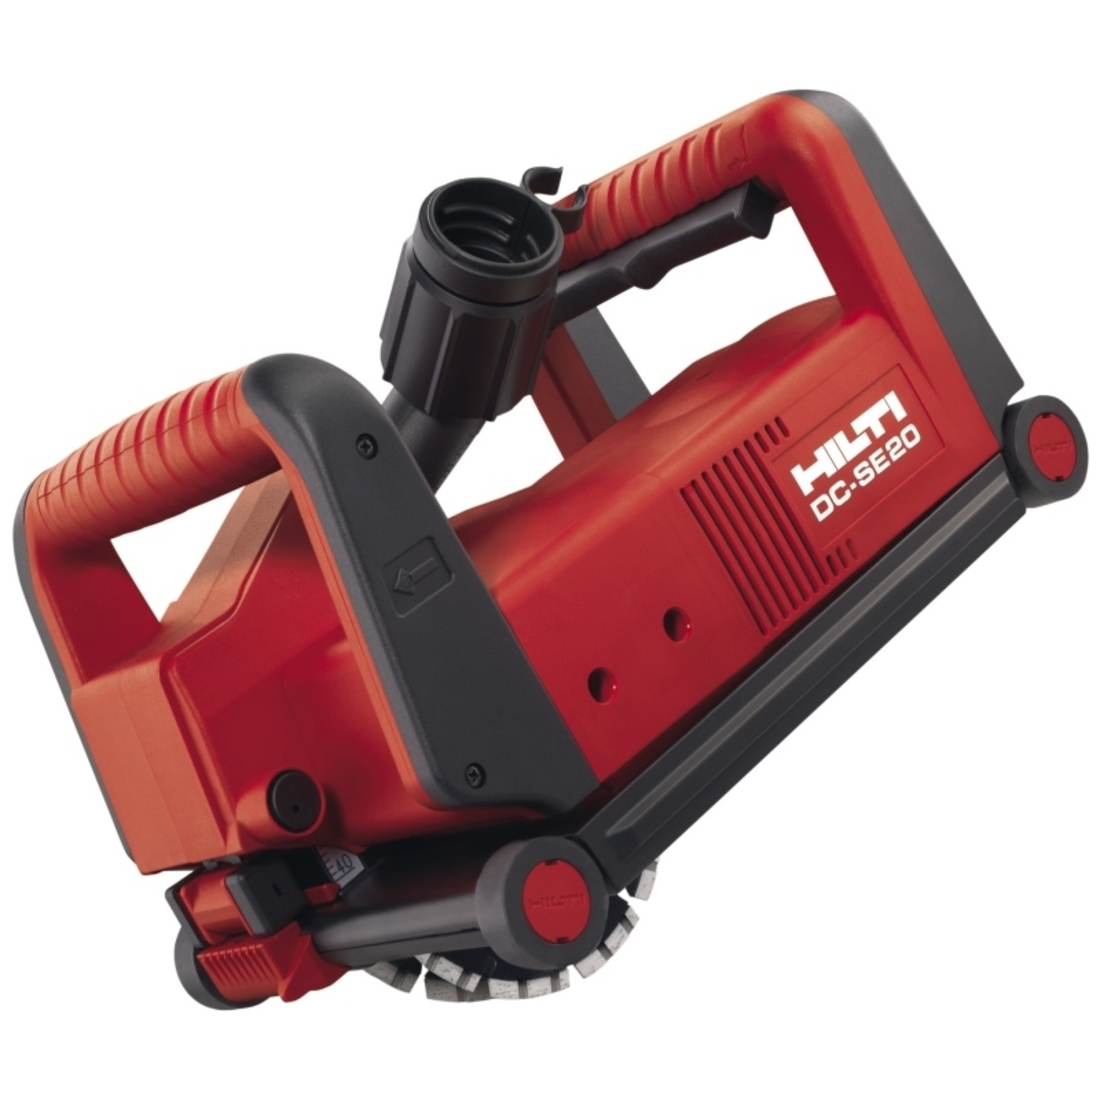 Hilti DC-SE 20 Slitting Machine